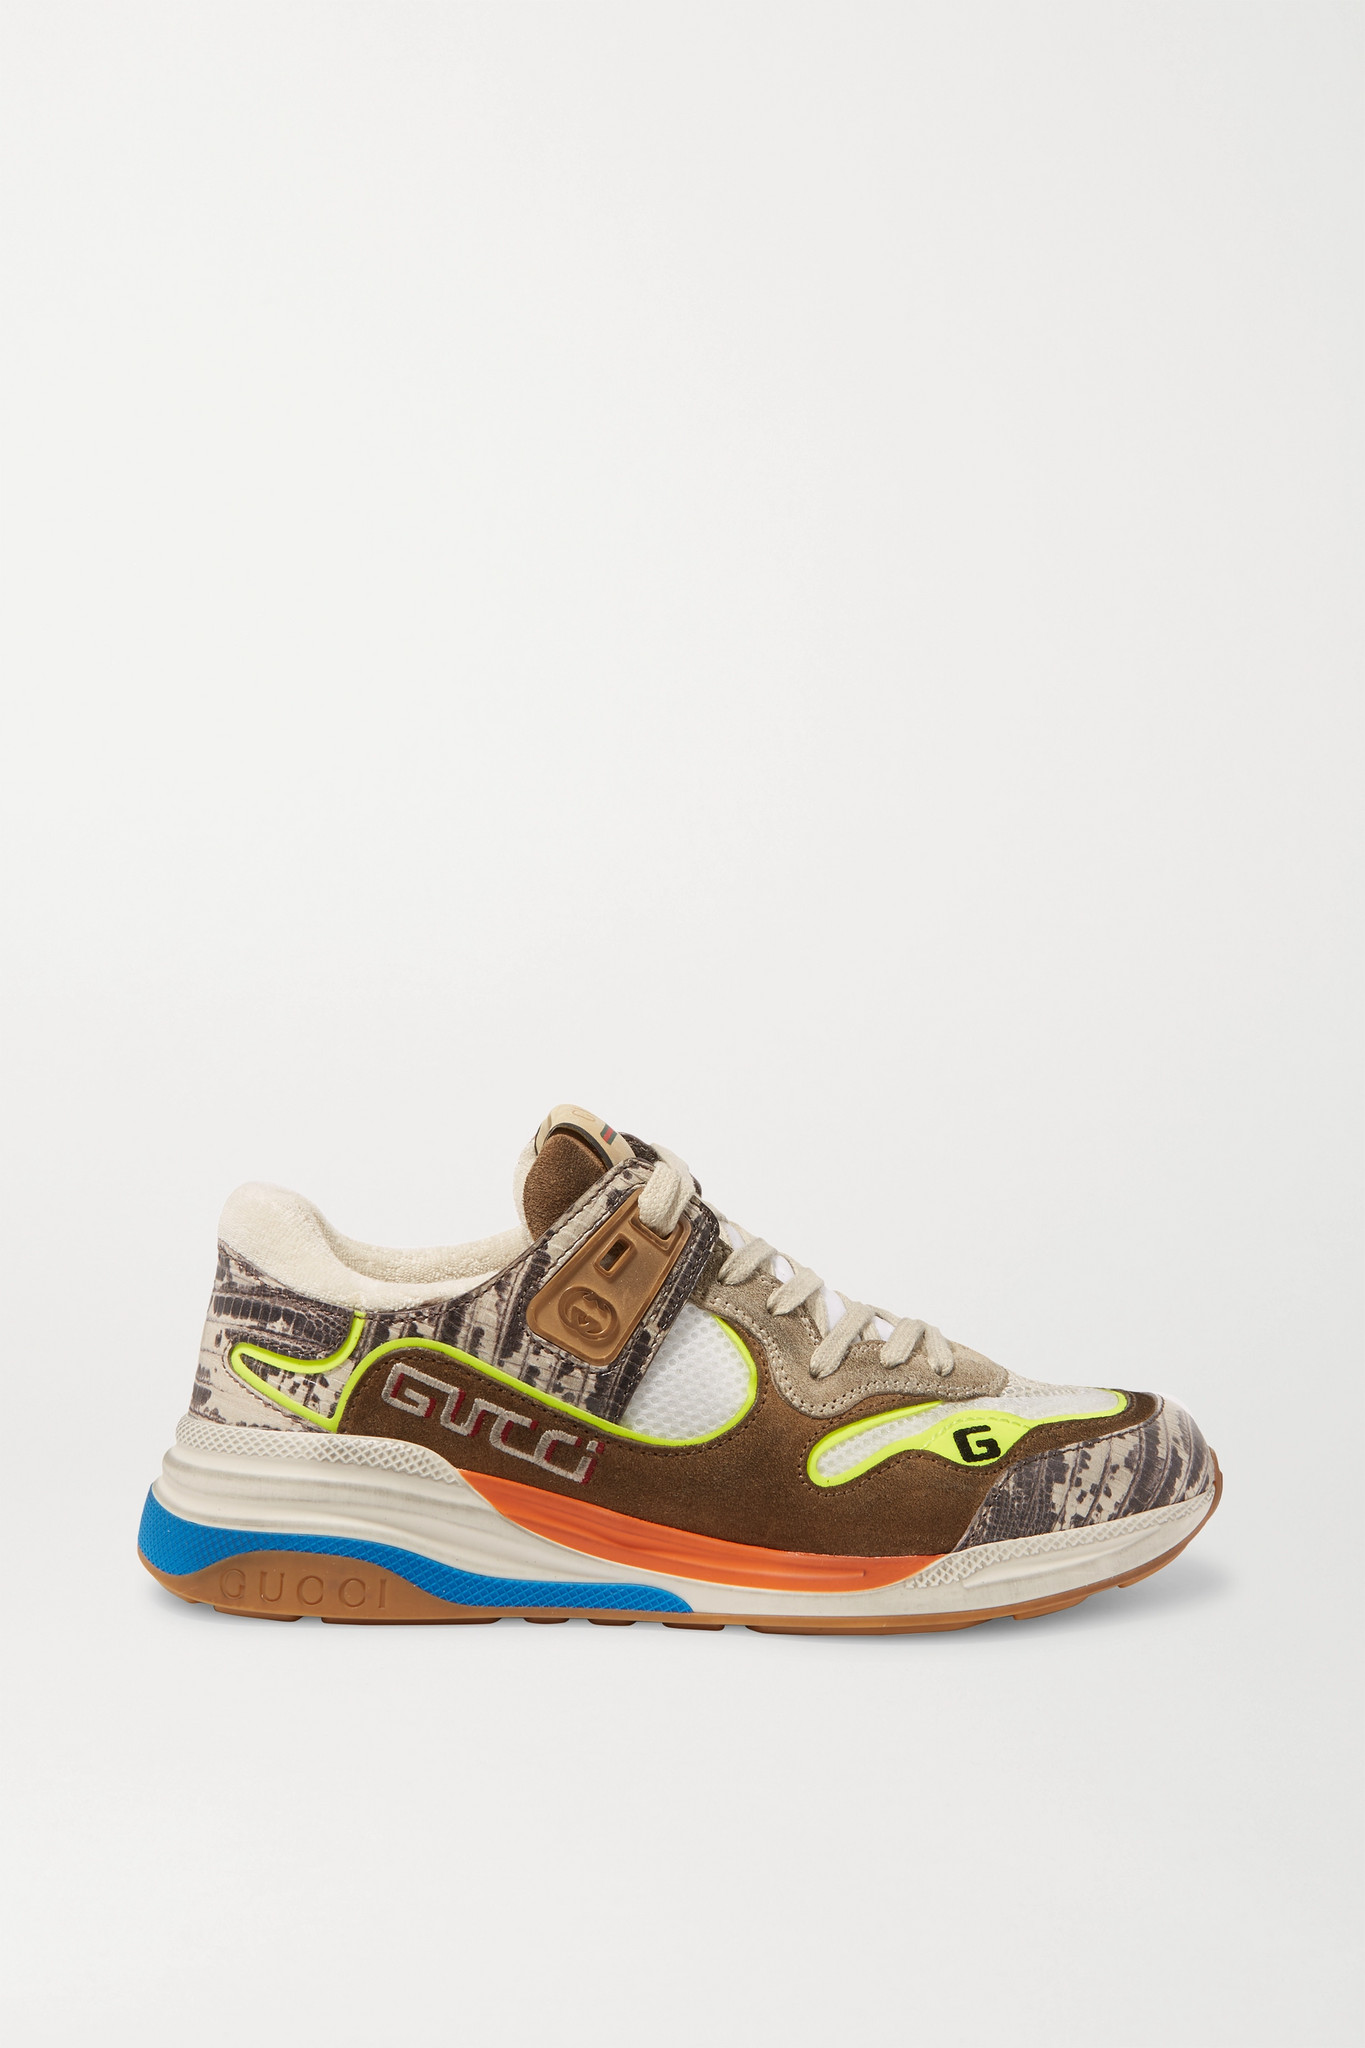 GUCCI - Ultrapace Snake-effect Leather, Mesh And Distressed Suede Sneakers - Brown - IT36